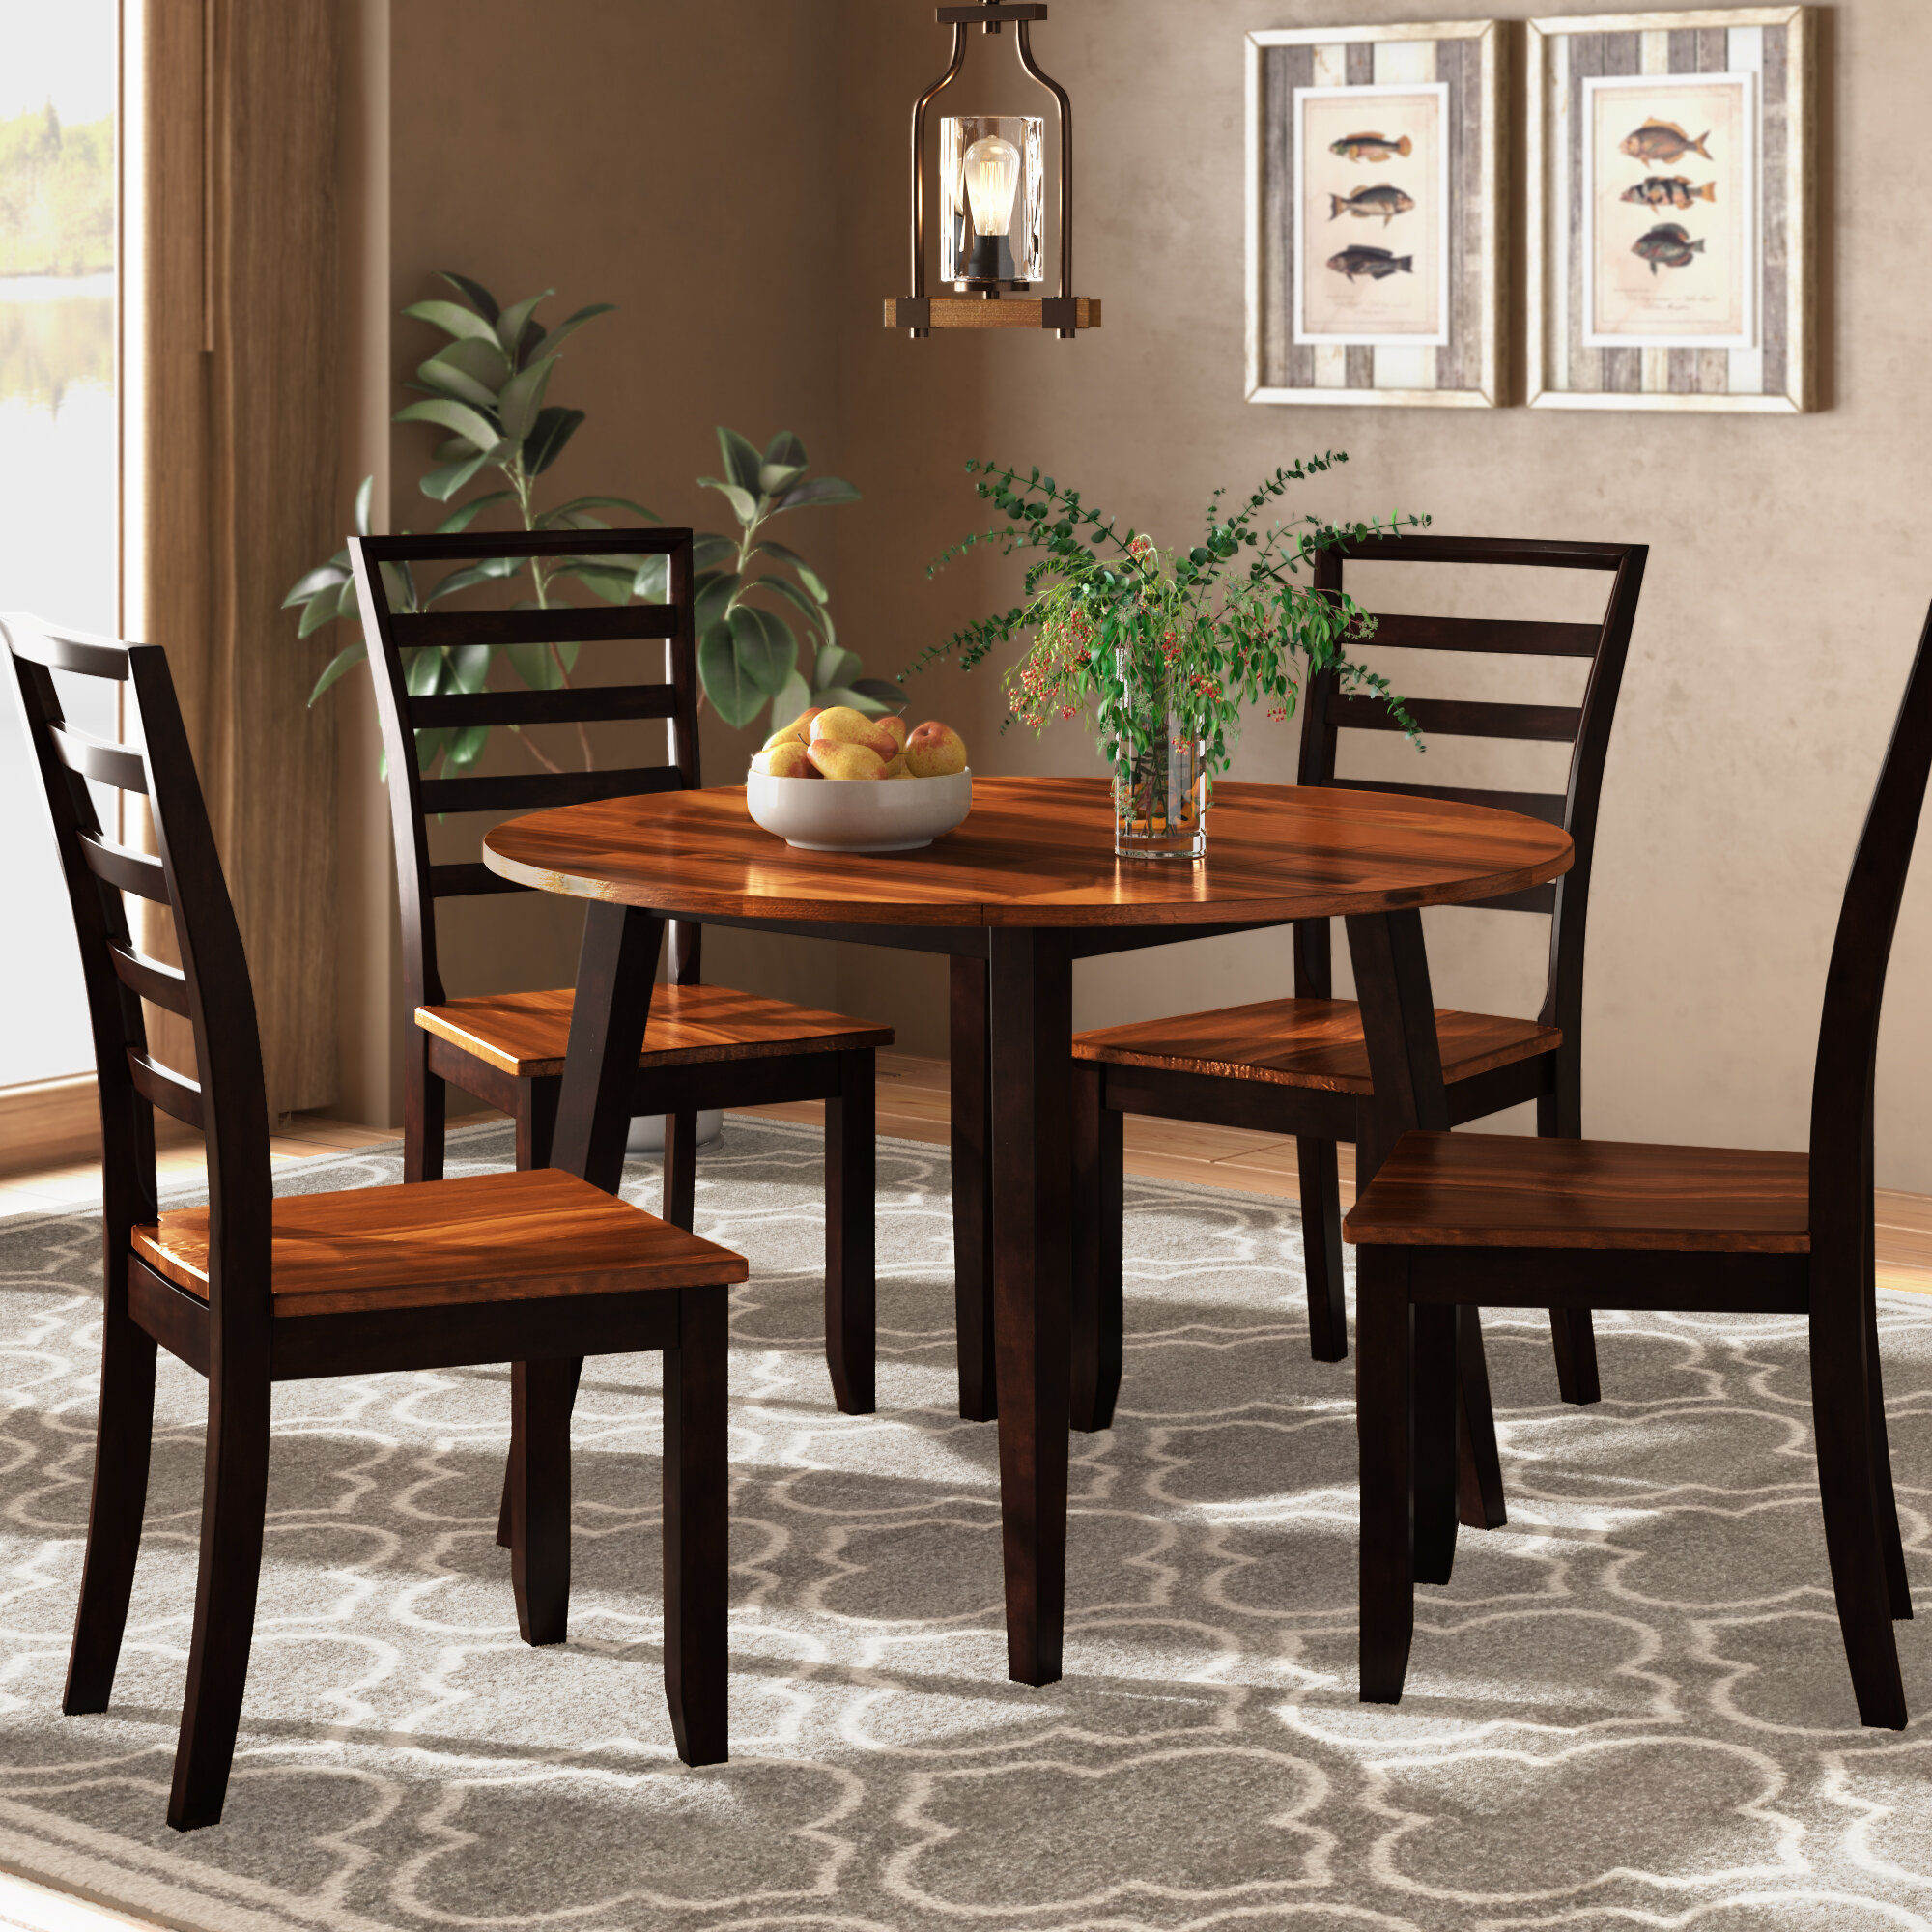 Hanska Wooden 5 Piece Counter Height Dining Table Sets (Set Of 5) Intended For Trendy Millwood Pines Hidalgo 5 Piece Drop Leaf Solid Wood Breakfast Nook (#6 of 20)